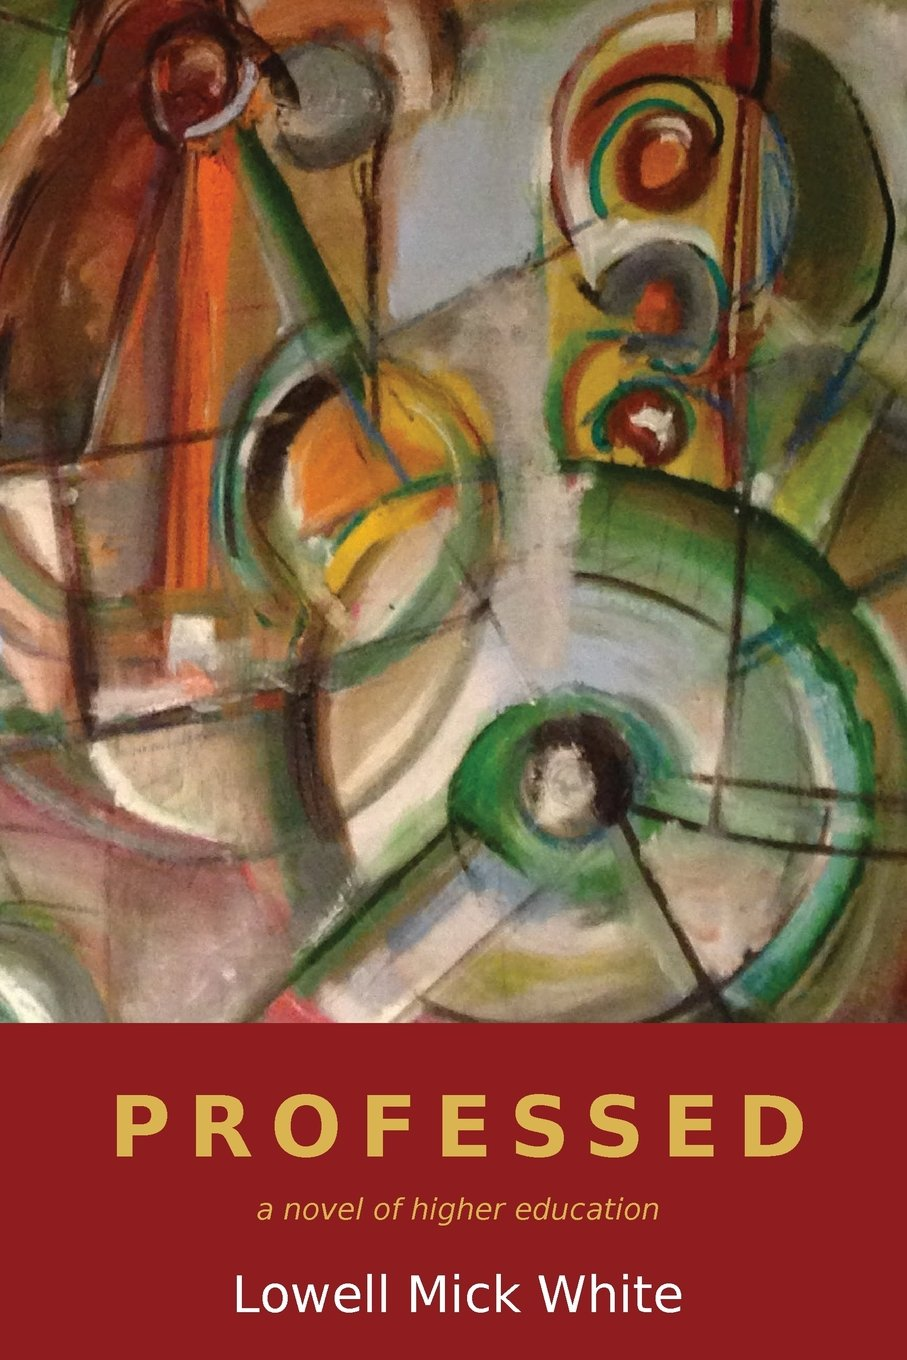 Professed, Lowell Mick White, academia, higher education, reading, novel, comic